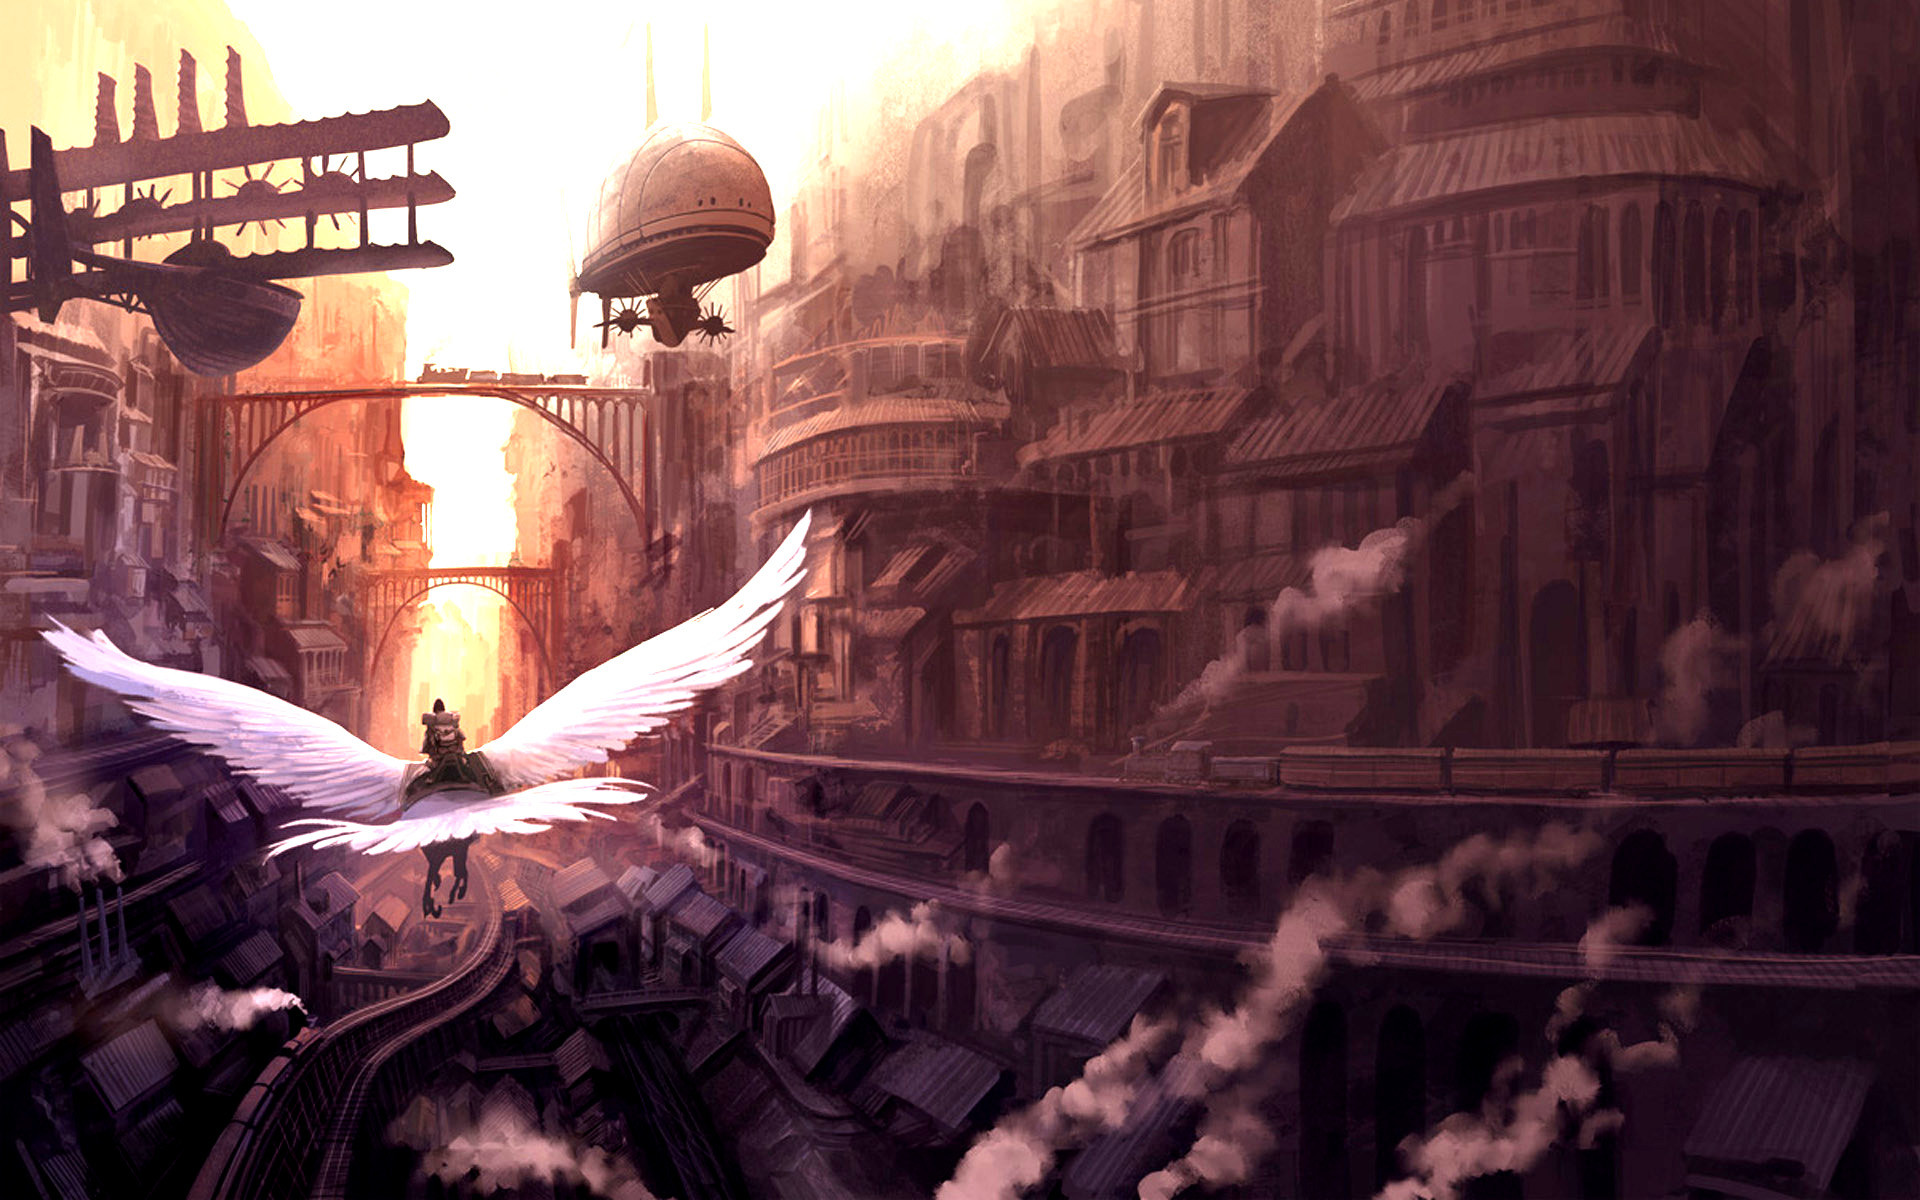 Res: 1920x1200, Free steampunk wallpaper background